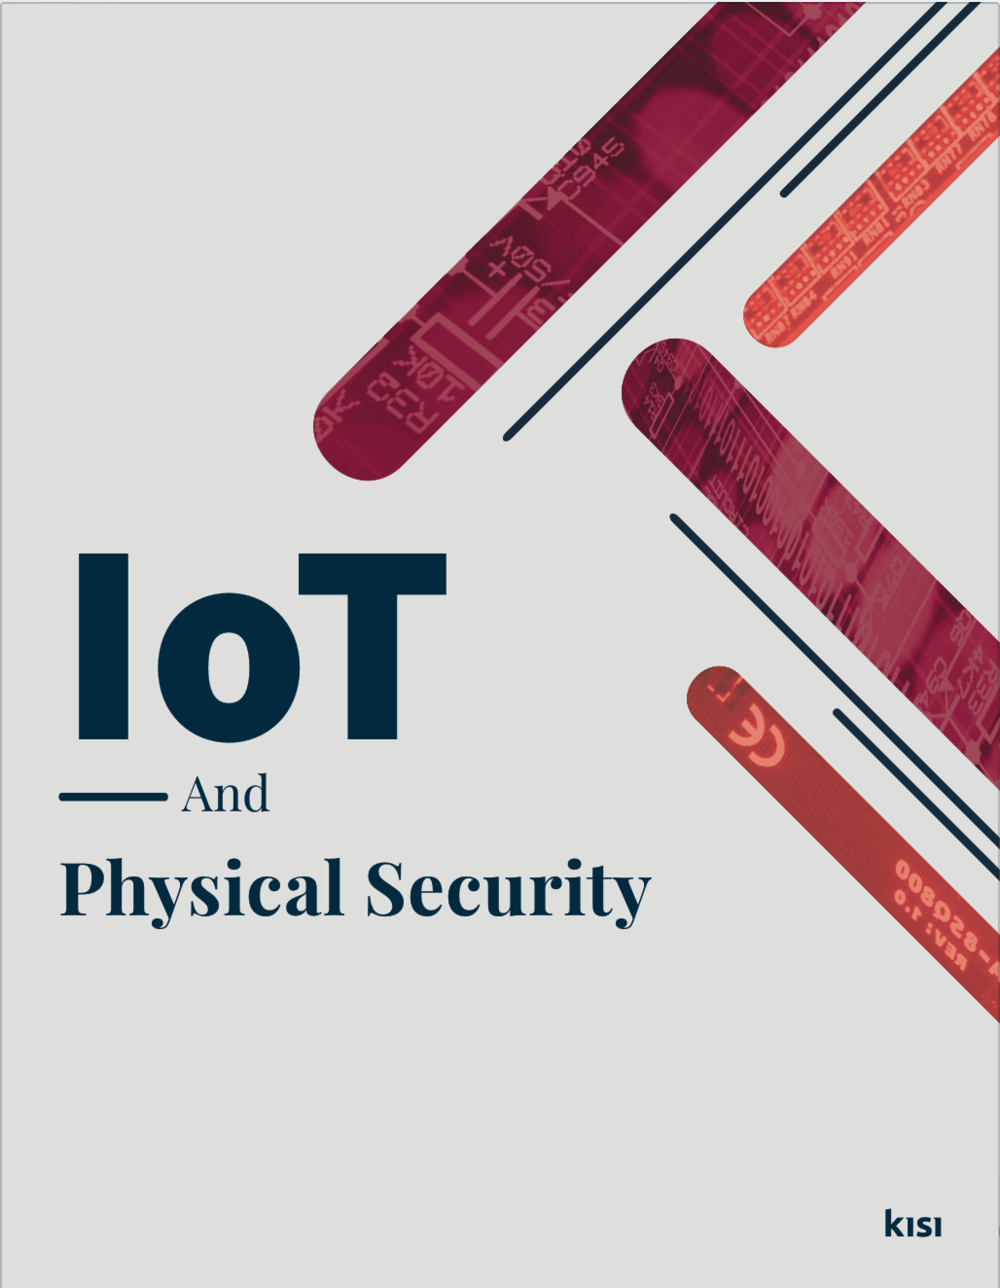 IoT physical security whitepaper